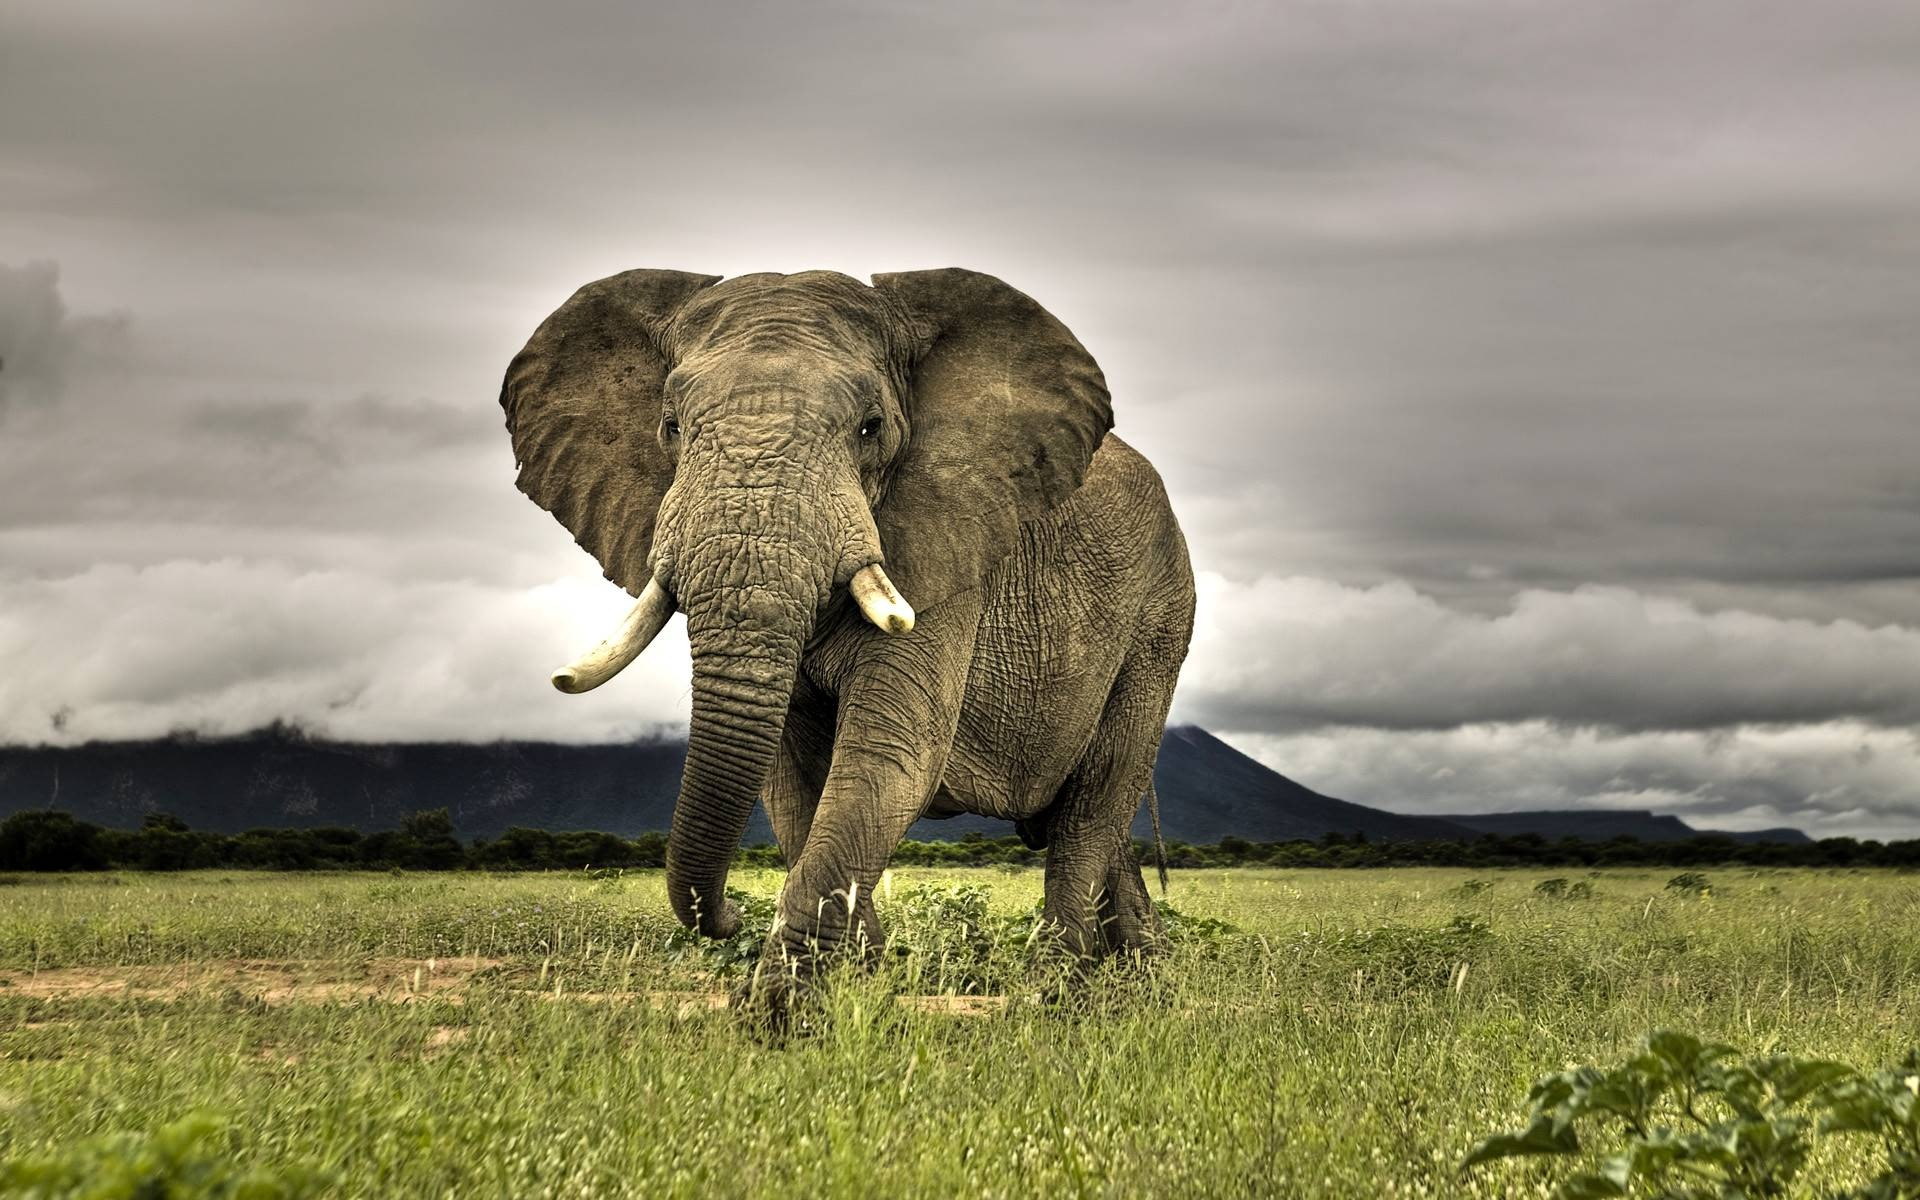 elephant wallpaper elephants animals wallpapers in jpg format for